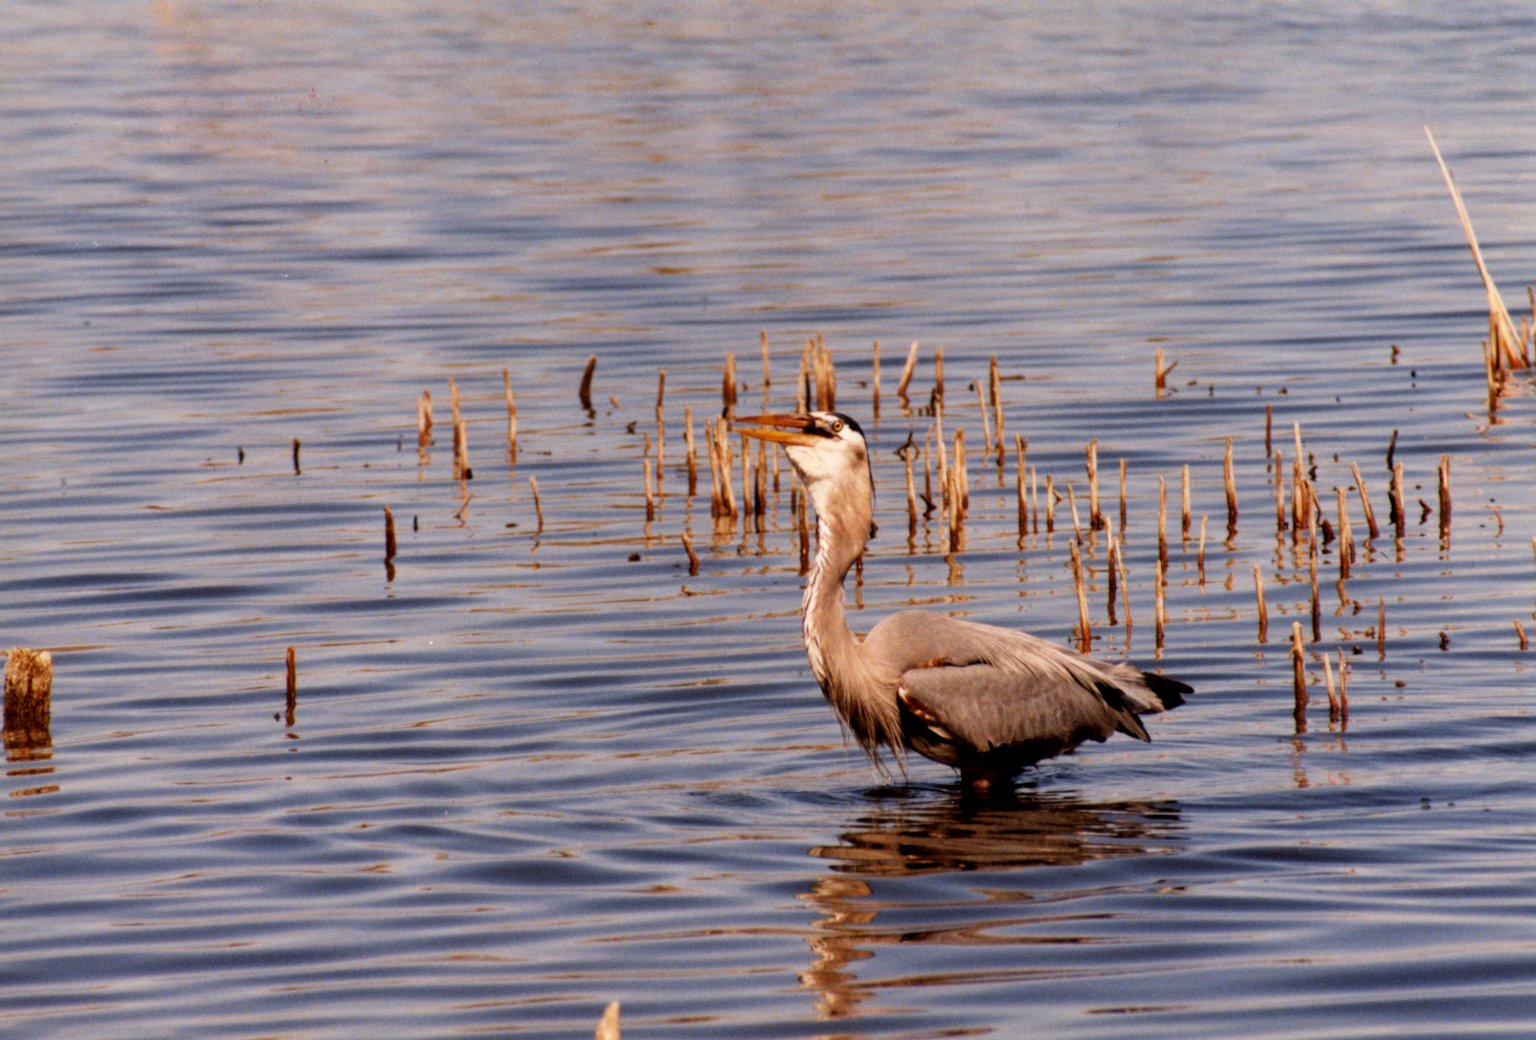 Close up of pelican in water with reeds